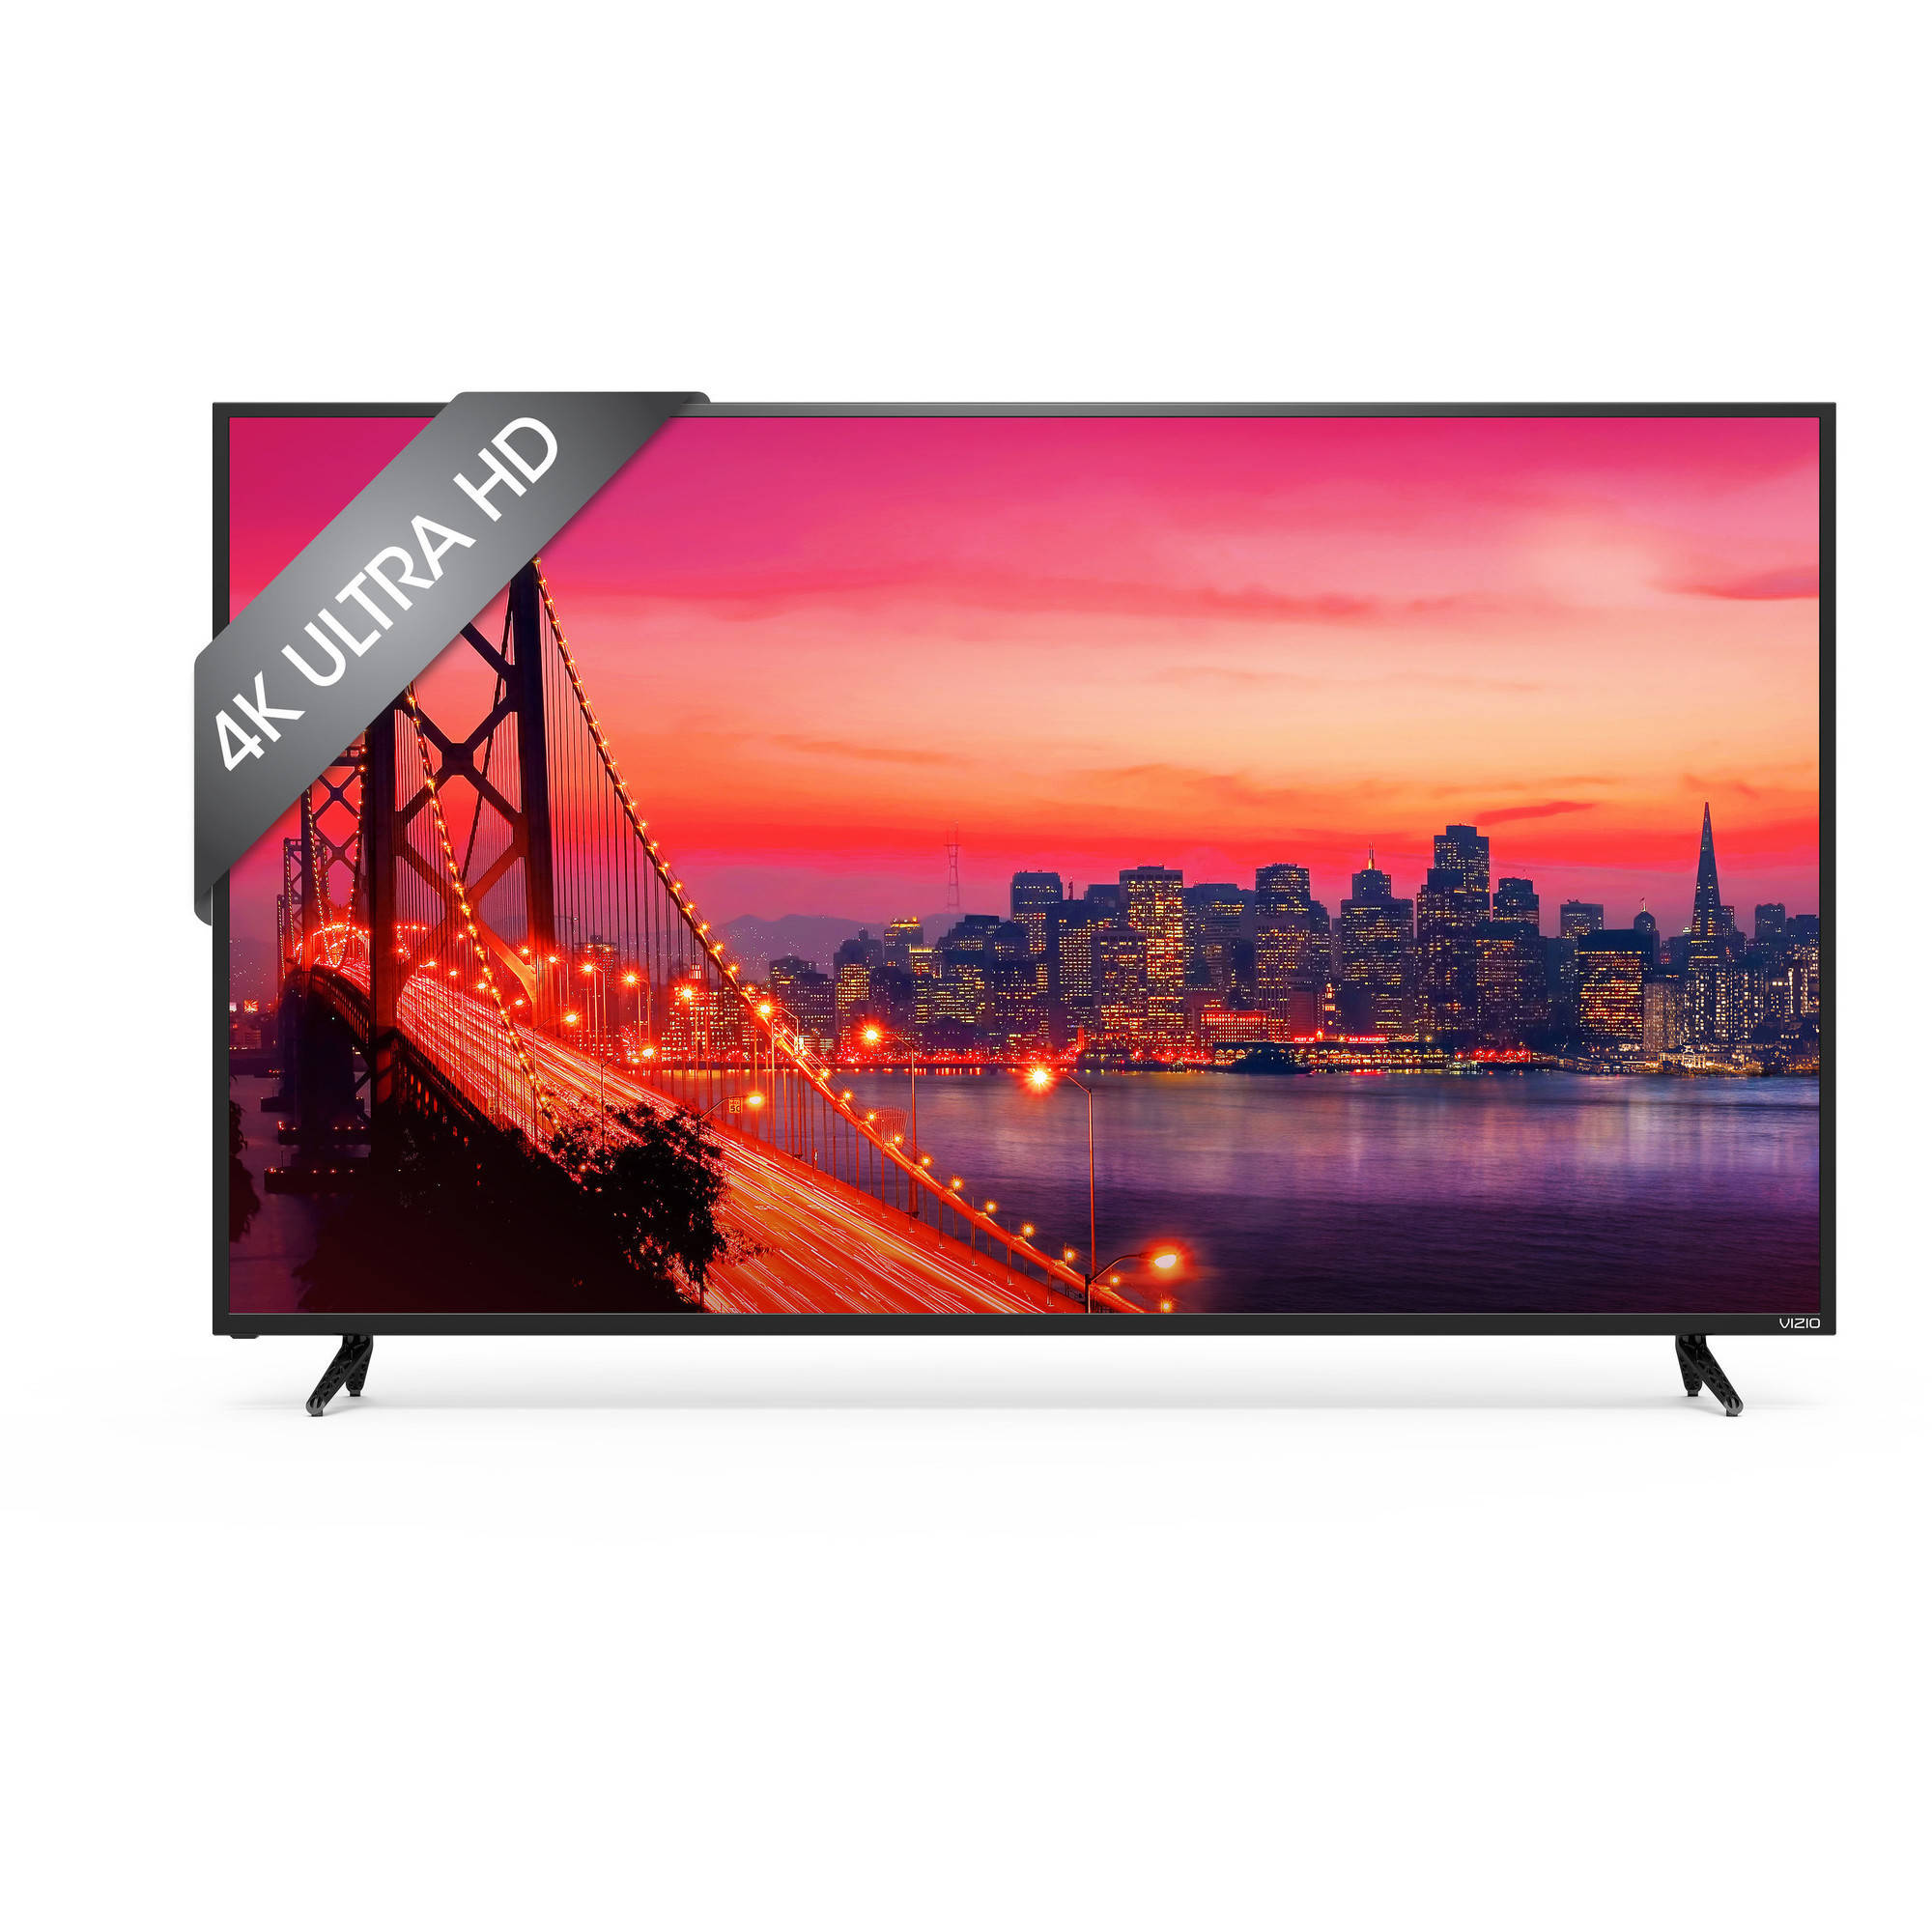 VIZIO SmartCast E-series 60 Class (60 diag.) Ultra HD Home Theater Display w/ Chromecast built-in